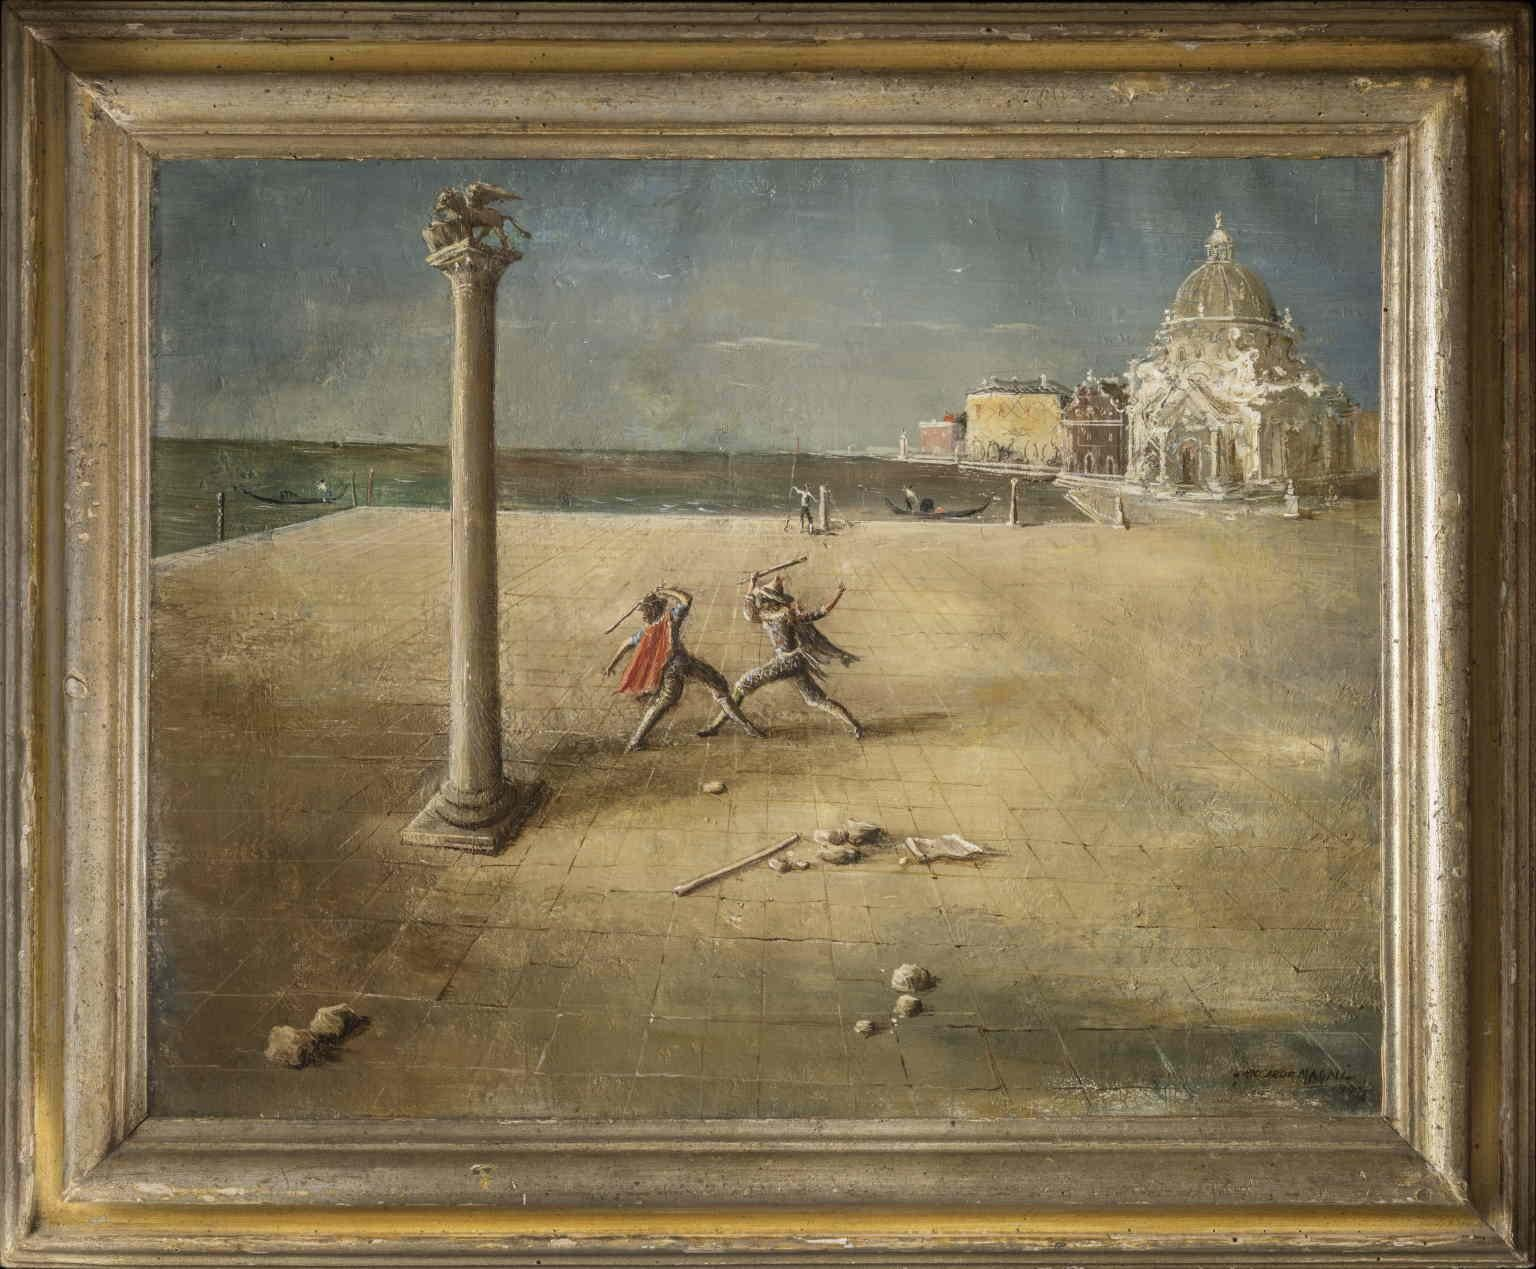 Riccardo Magni Harlequin duel Venice 1932 oil canvas signed dated